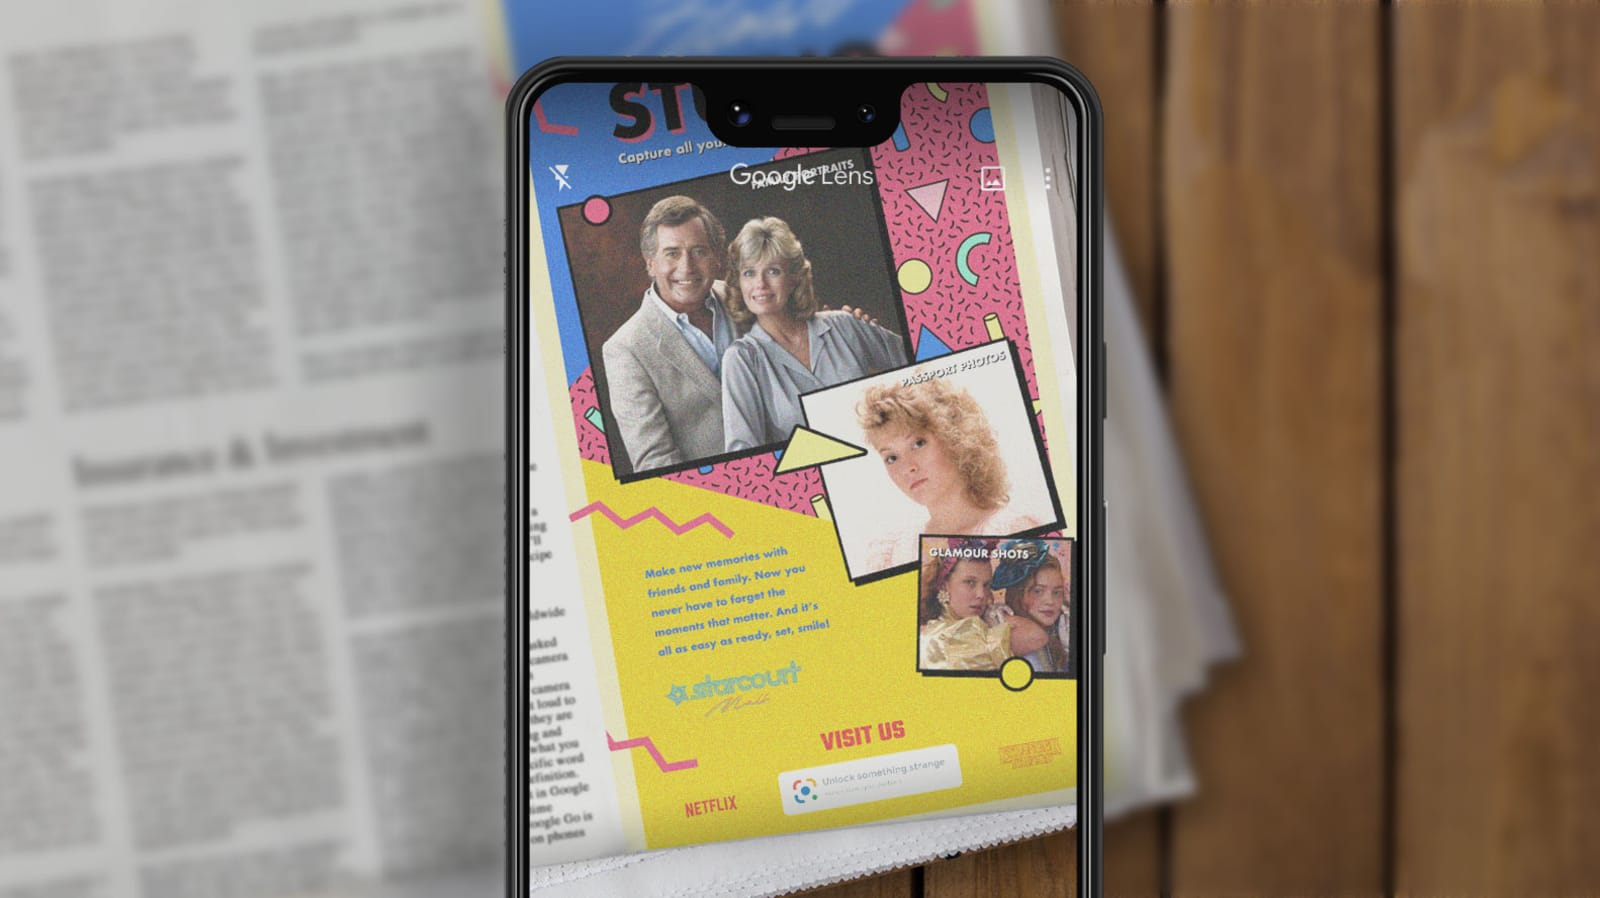 Google placed 'Stranger Things' AR ads in 'The New York Times'